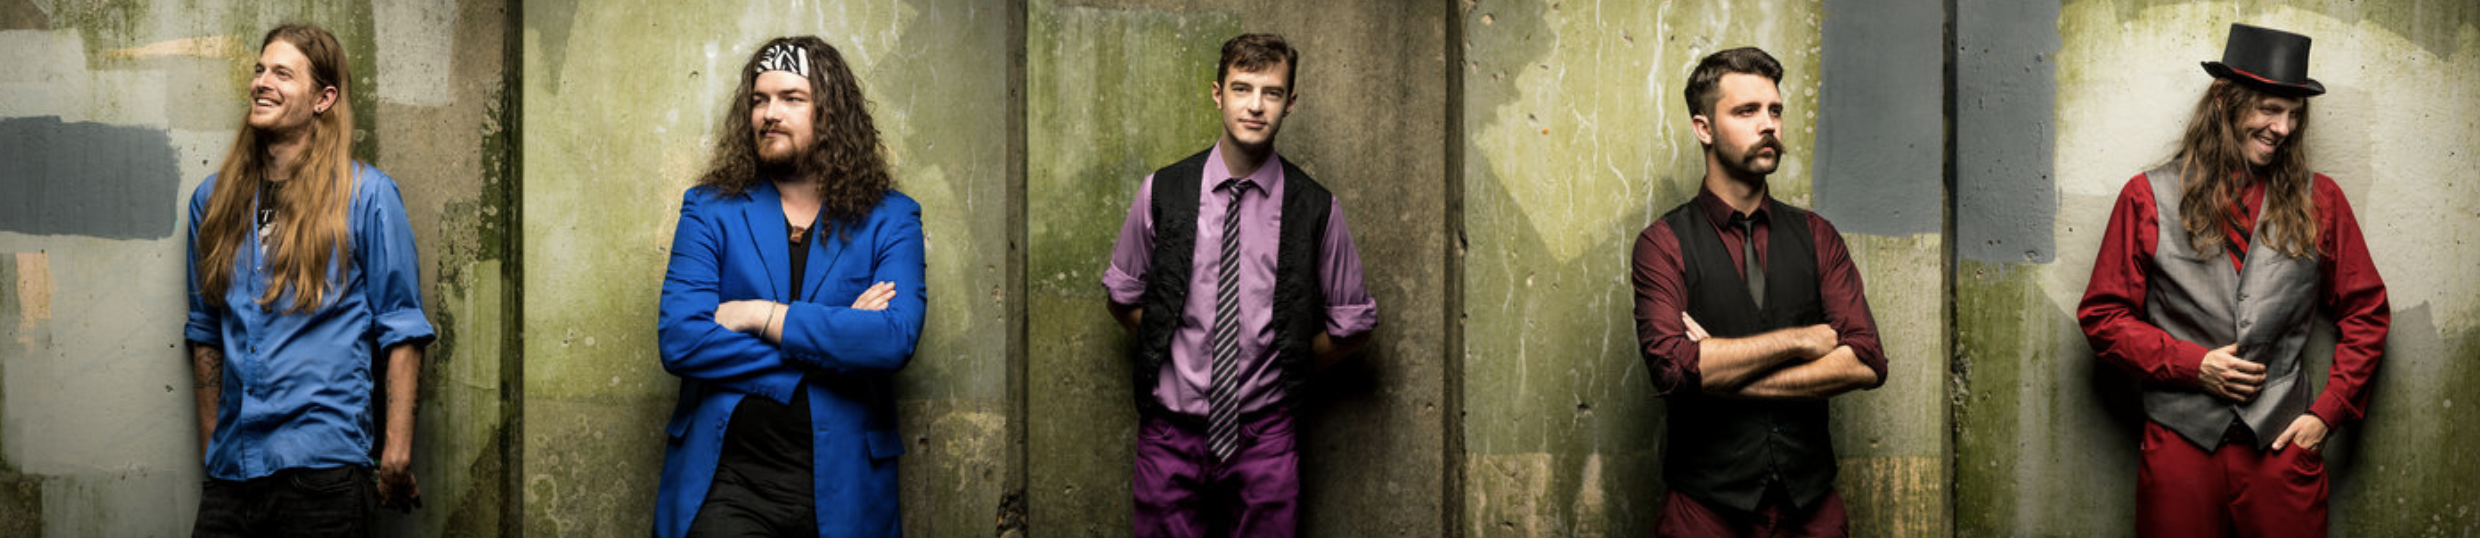 a group of male band members pose differently against a concrete wall while wearing different colored clothing to demonstrate one of the tips for great branding photos